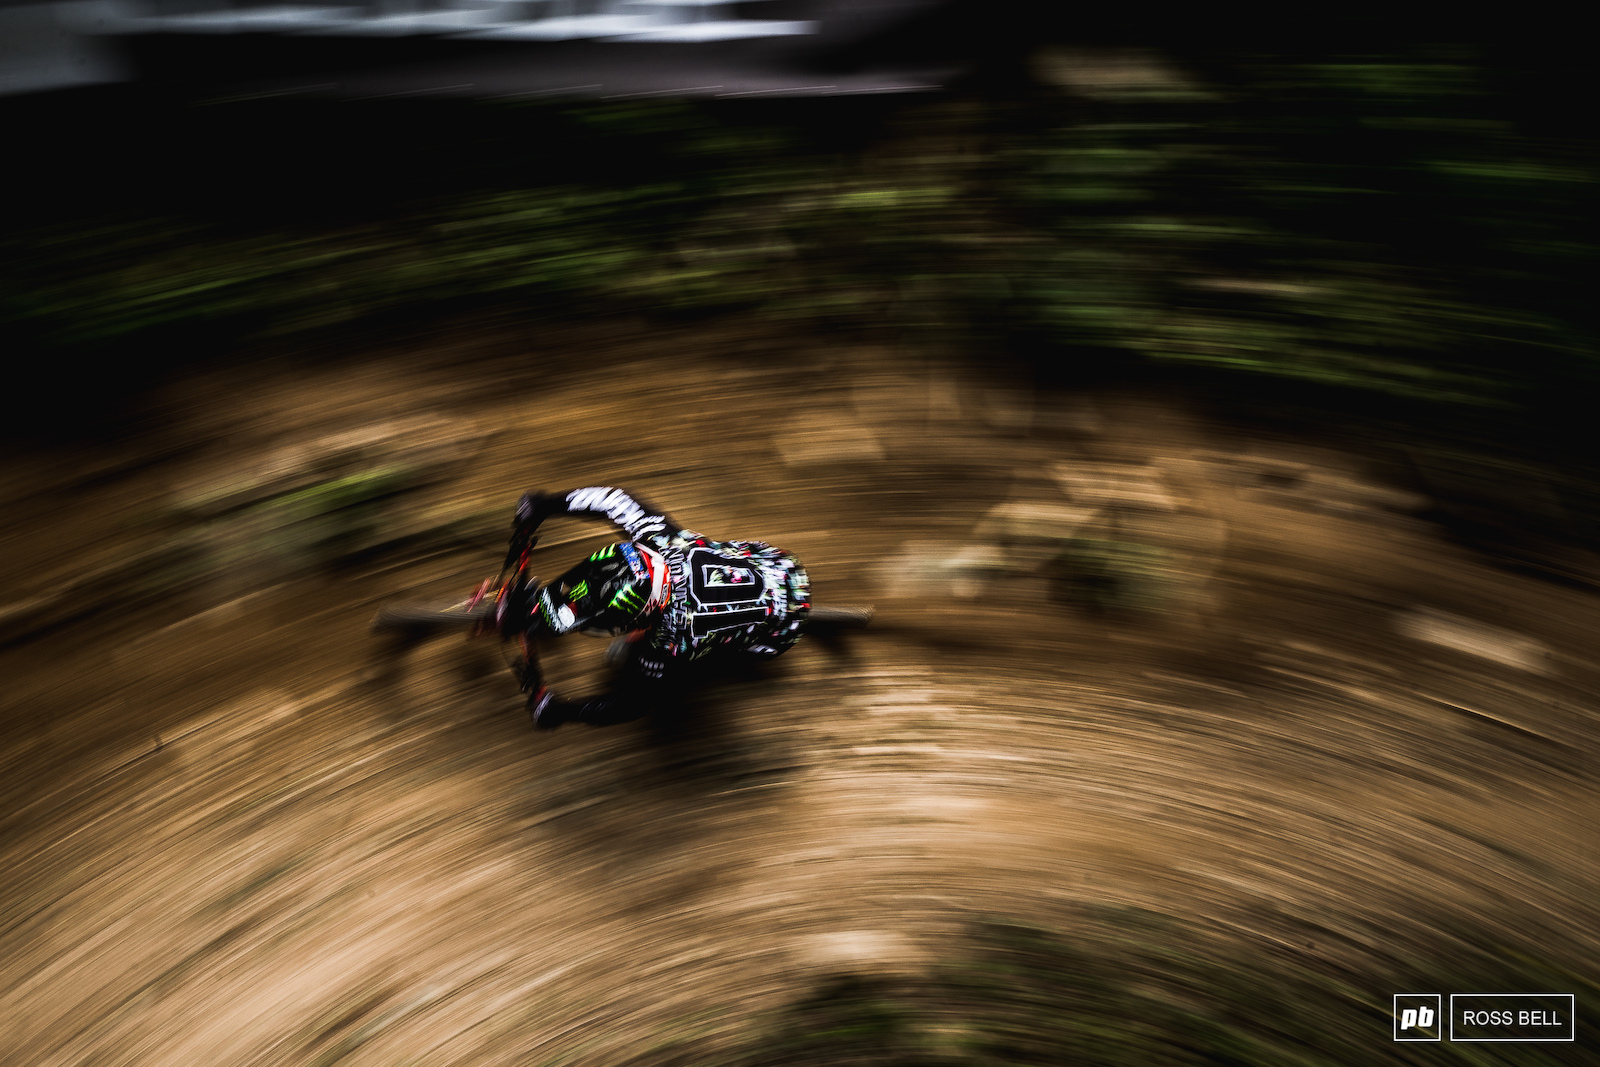 Connor Fearon ripping the last few turns in the woods before launching into the grass for the final minute of track.